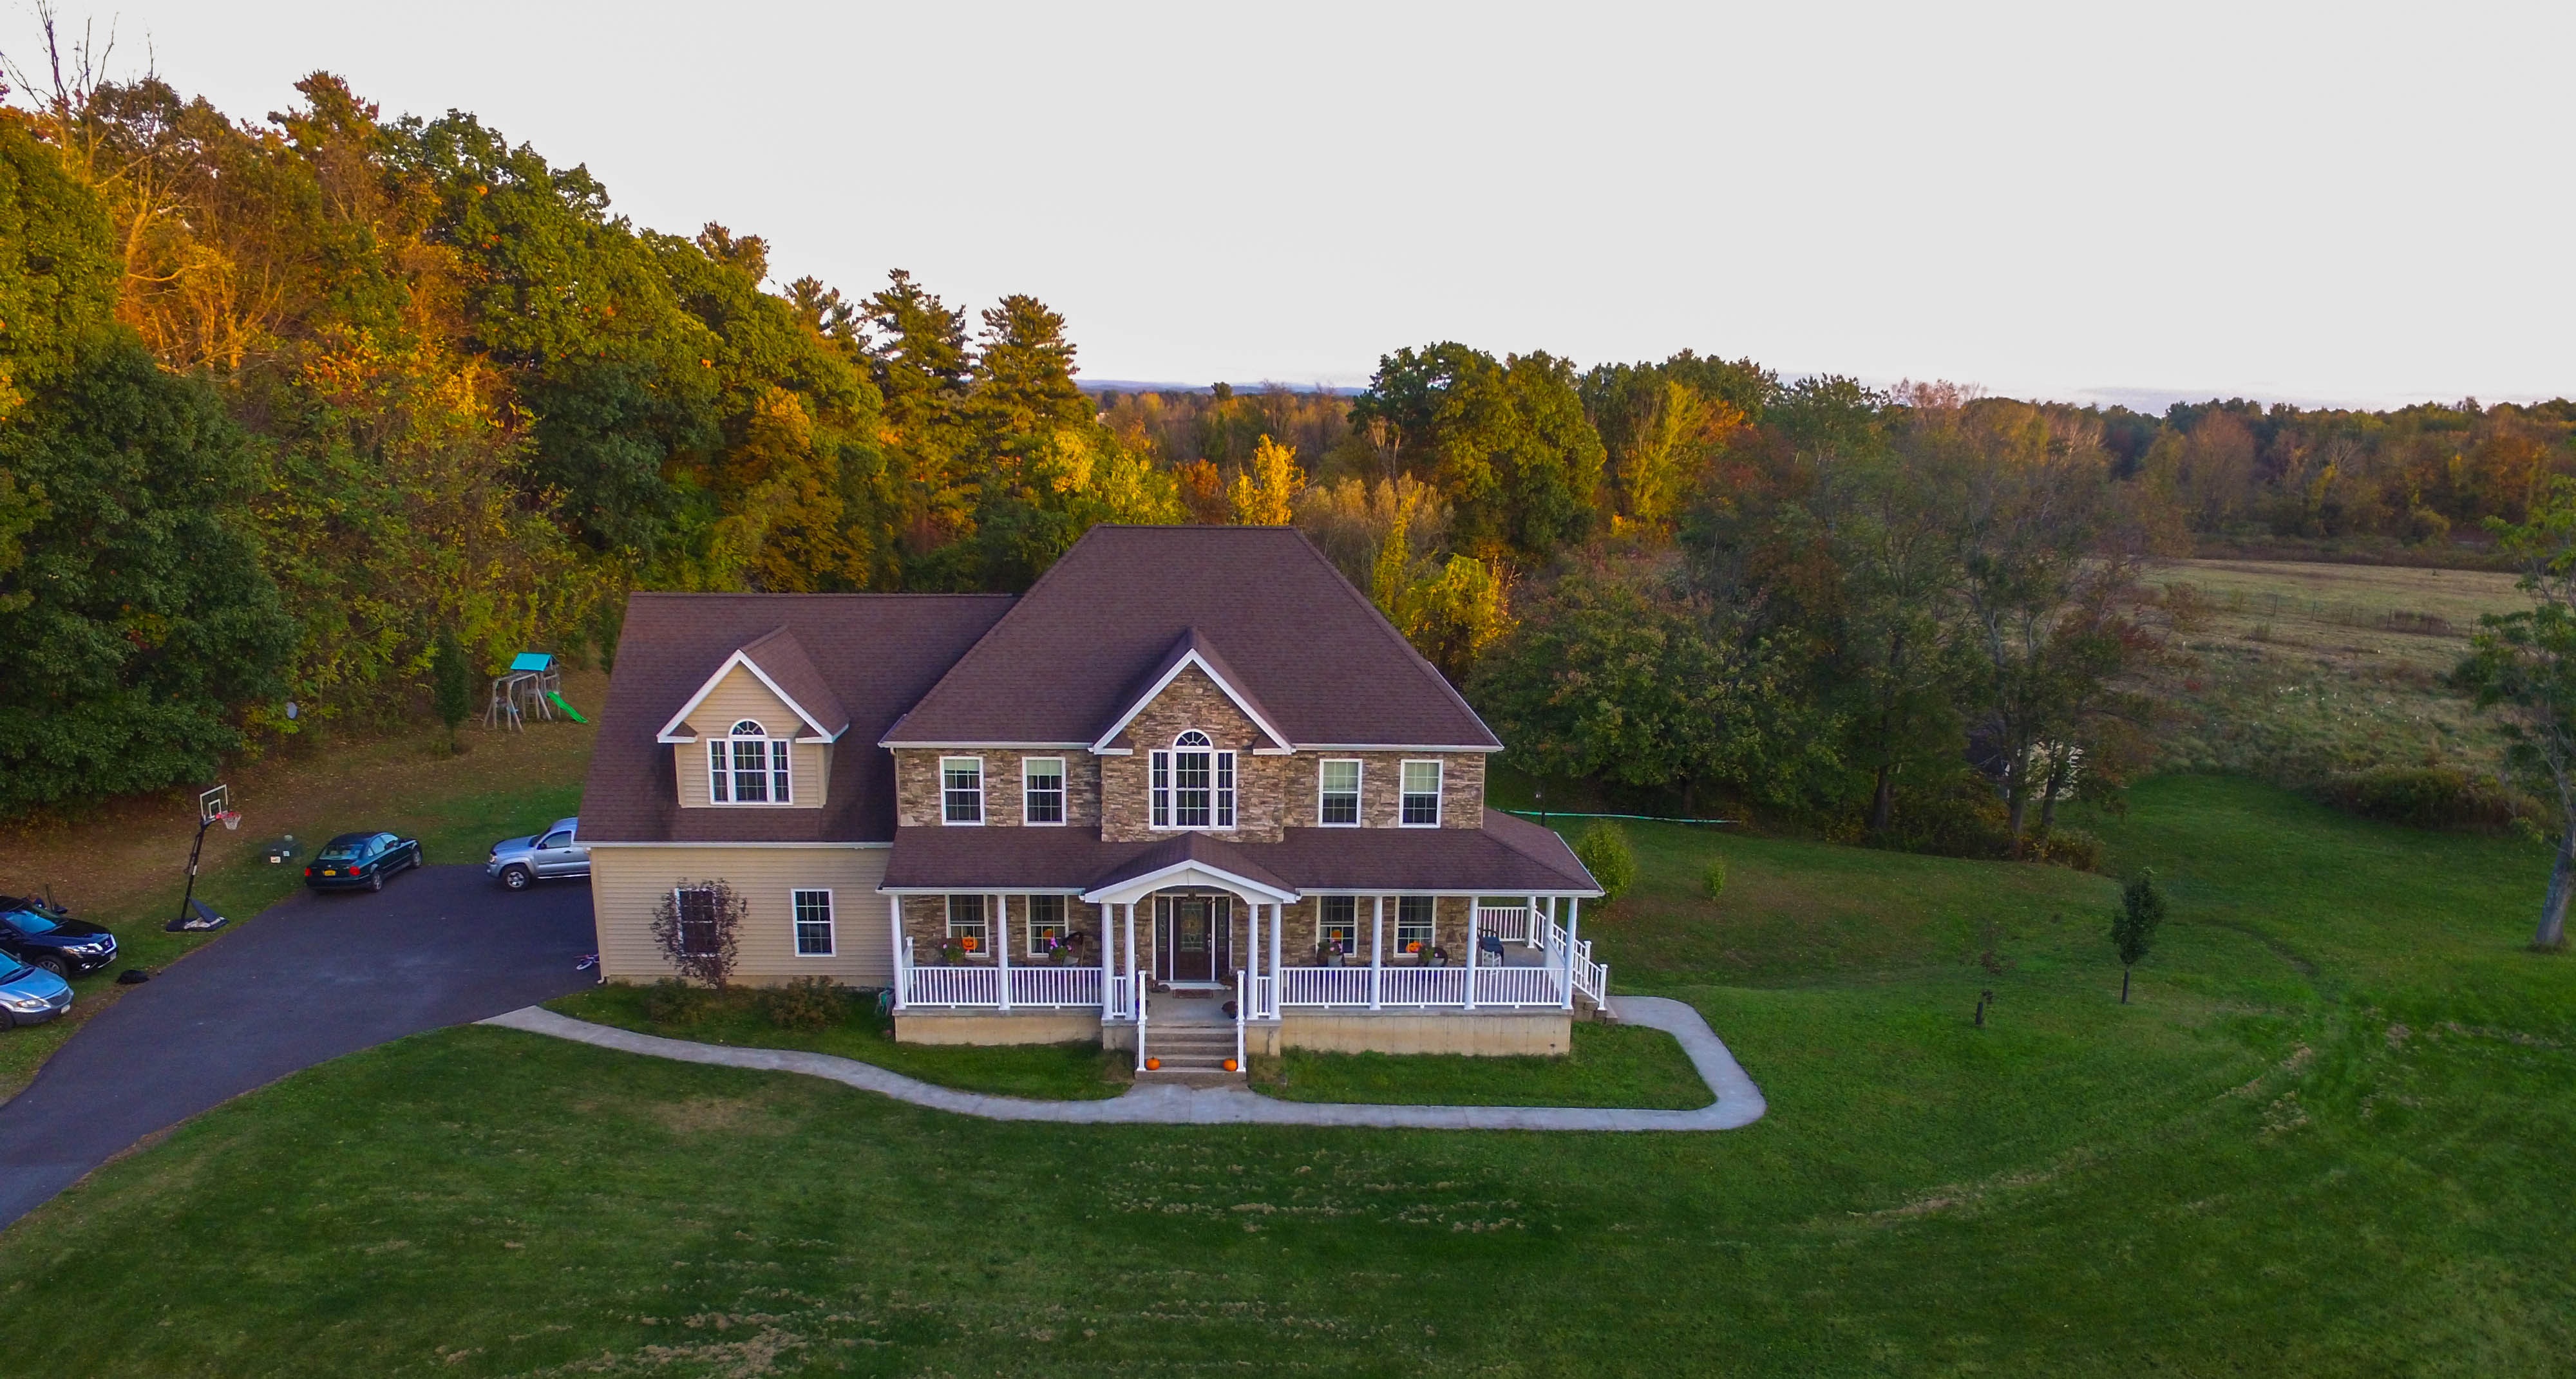 Real Estate Photography/Video